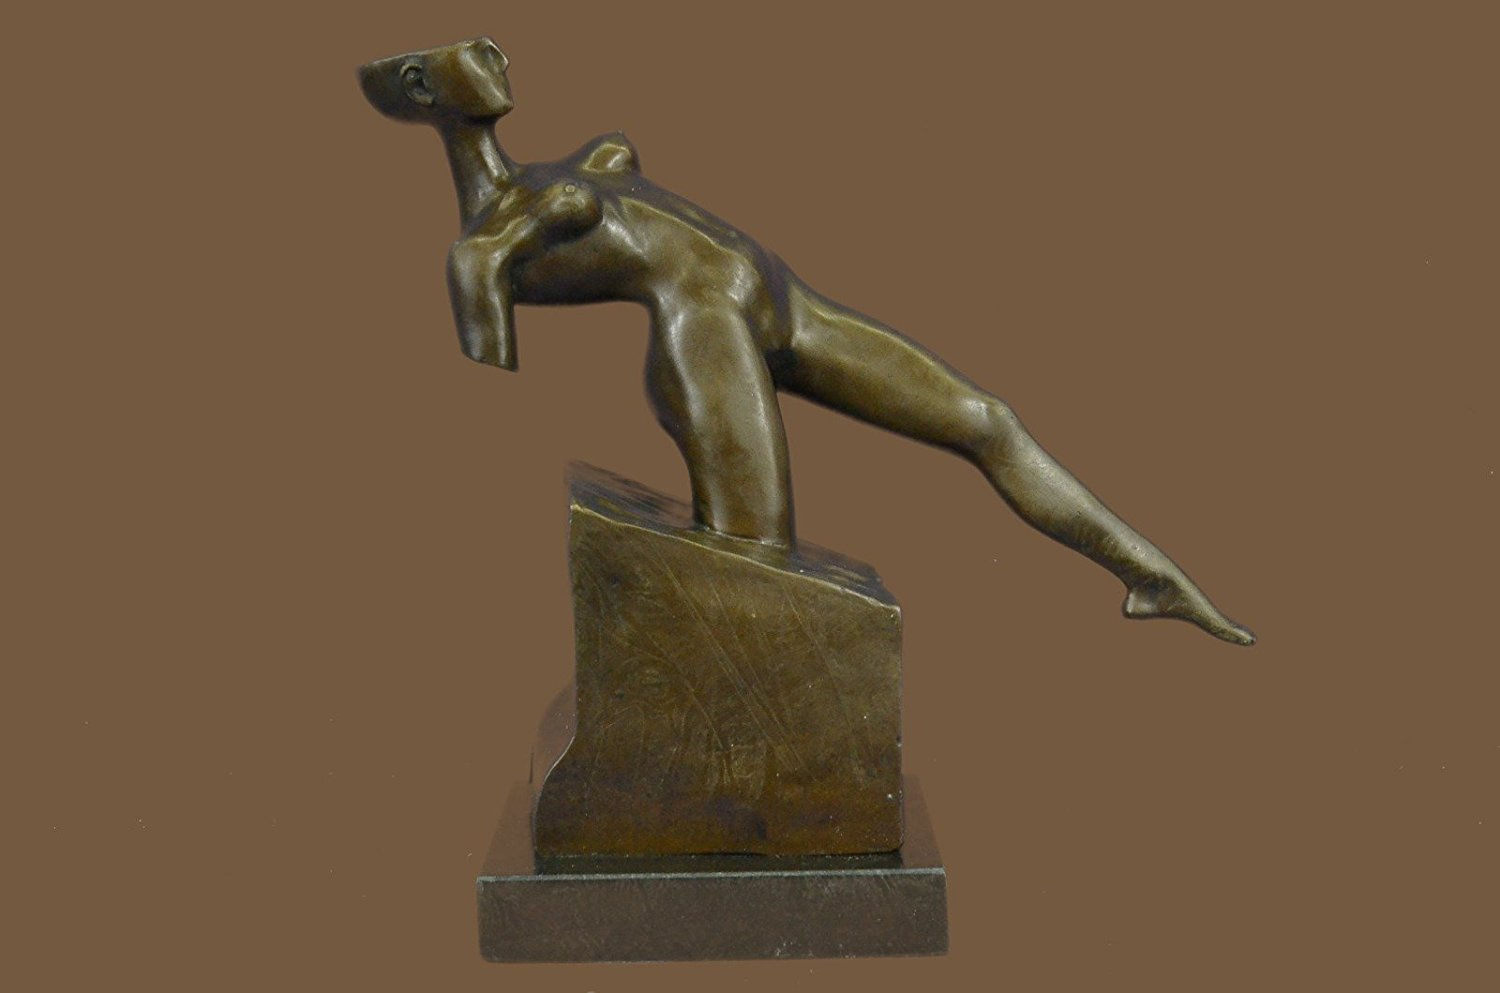 ...Handmade...European Bronze Sculpture Abstract Erotic Sensual Nude Woman By Rodin Modern Art (1X-DS-566) Bronze Sculpture Statues Figurine Nude Office & Home Décor Collectibles Sale Deal Gifts